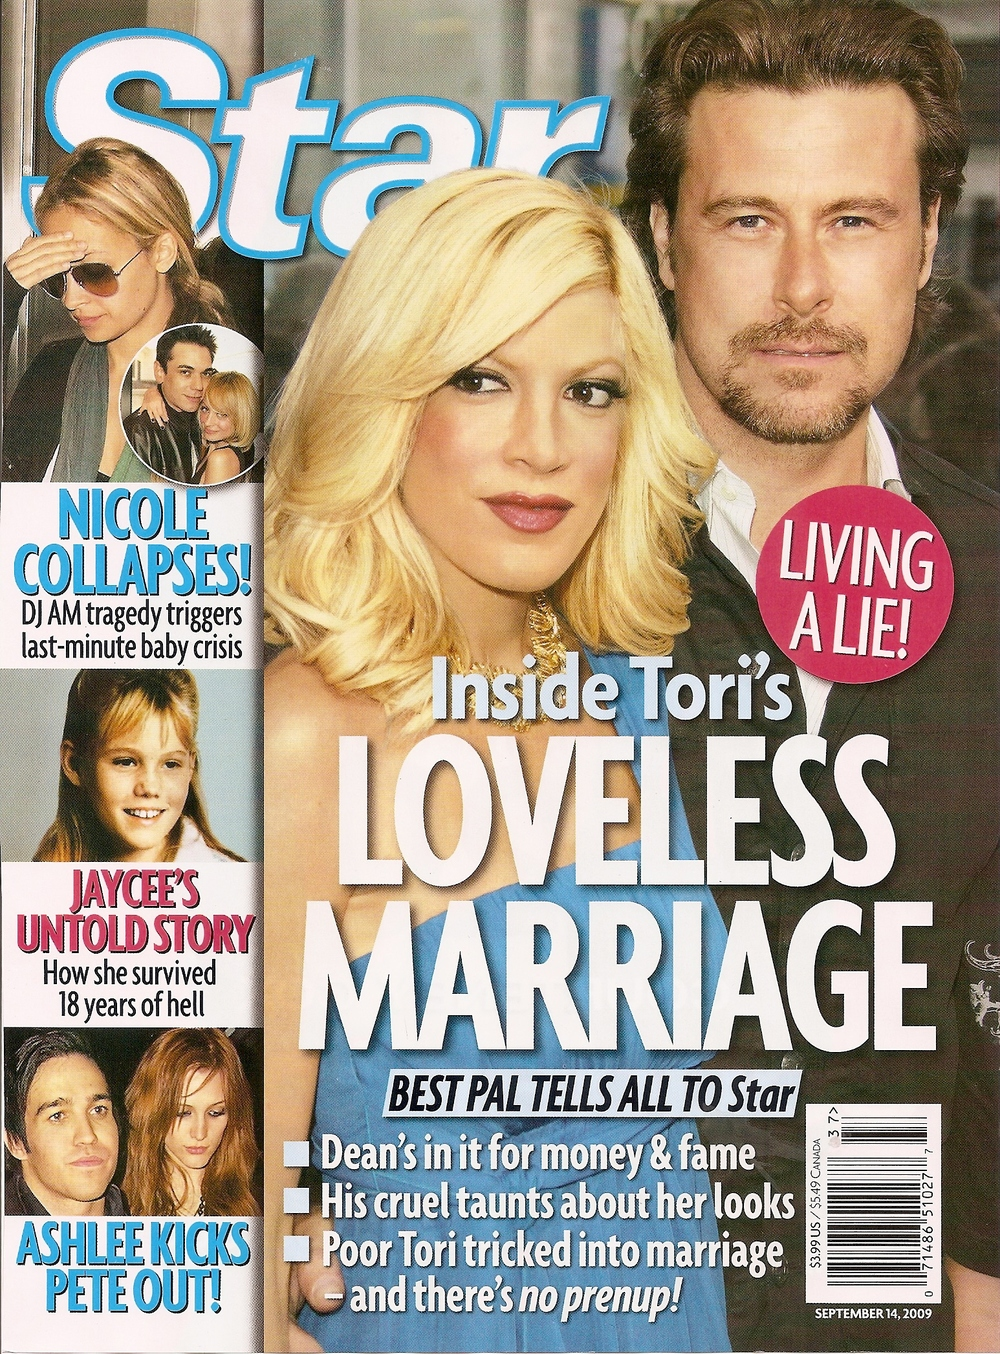 star magazine sept09-cover.jpg